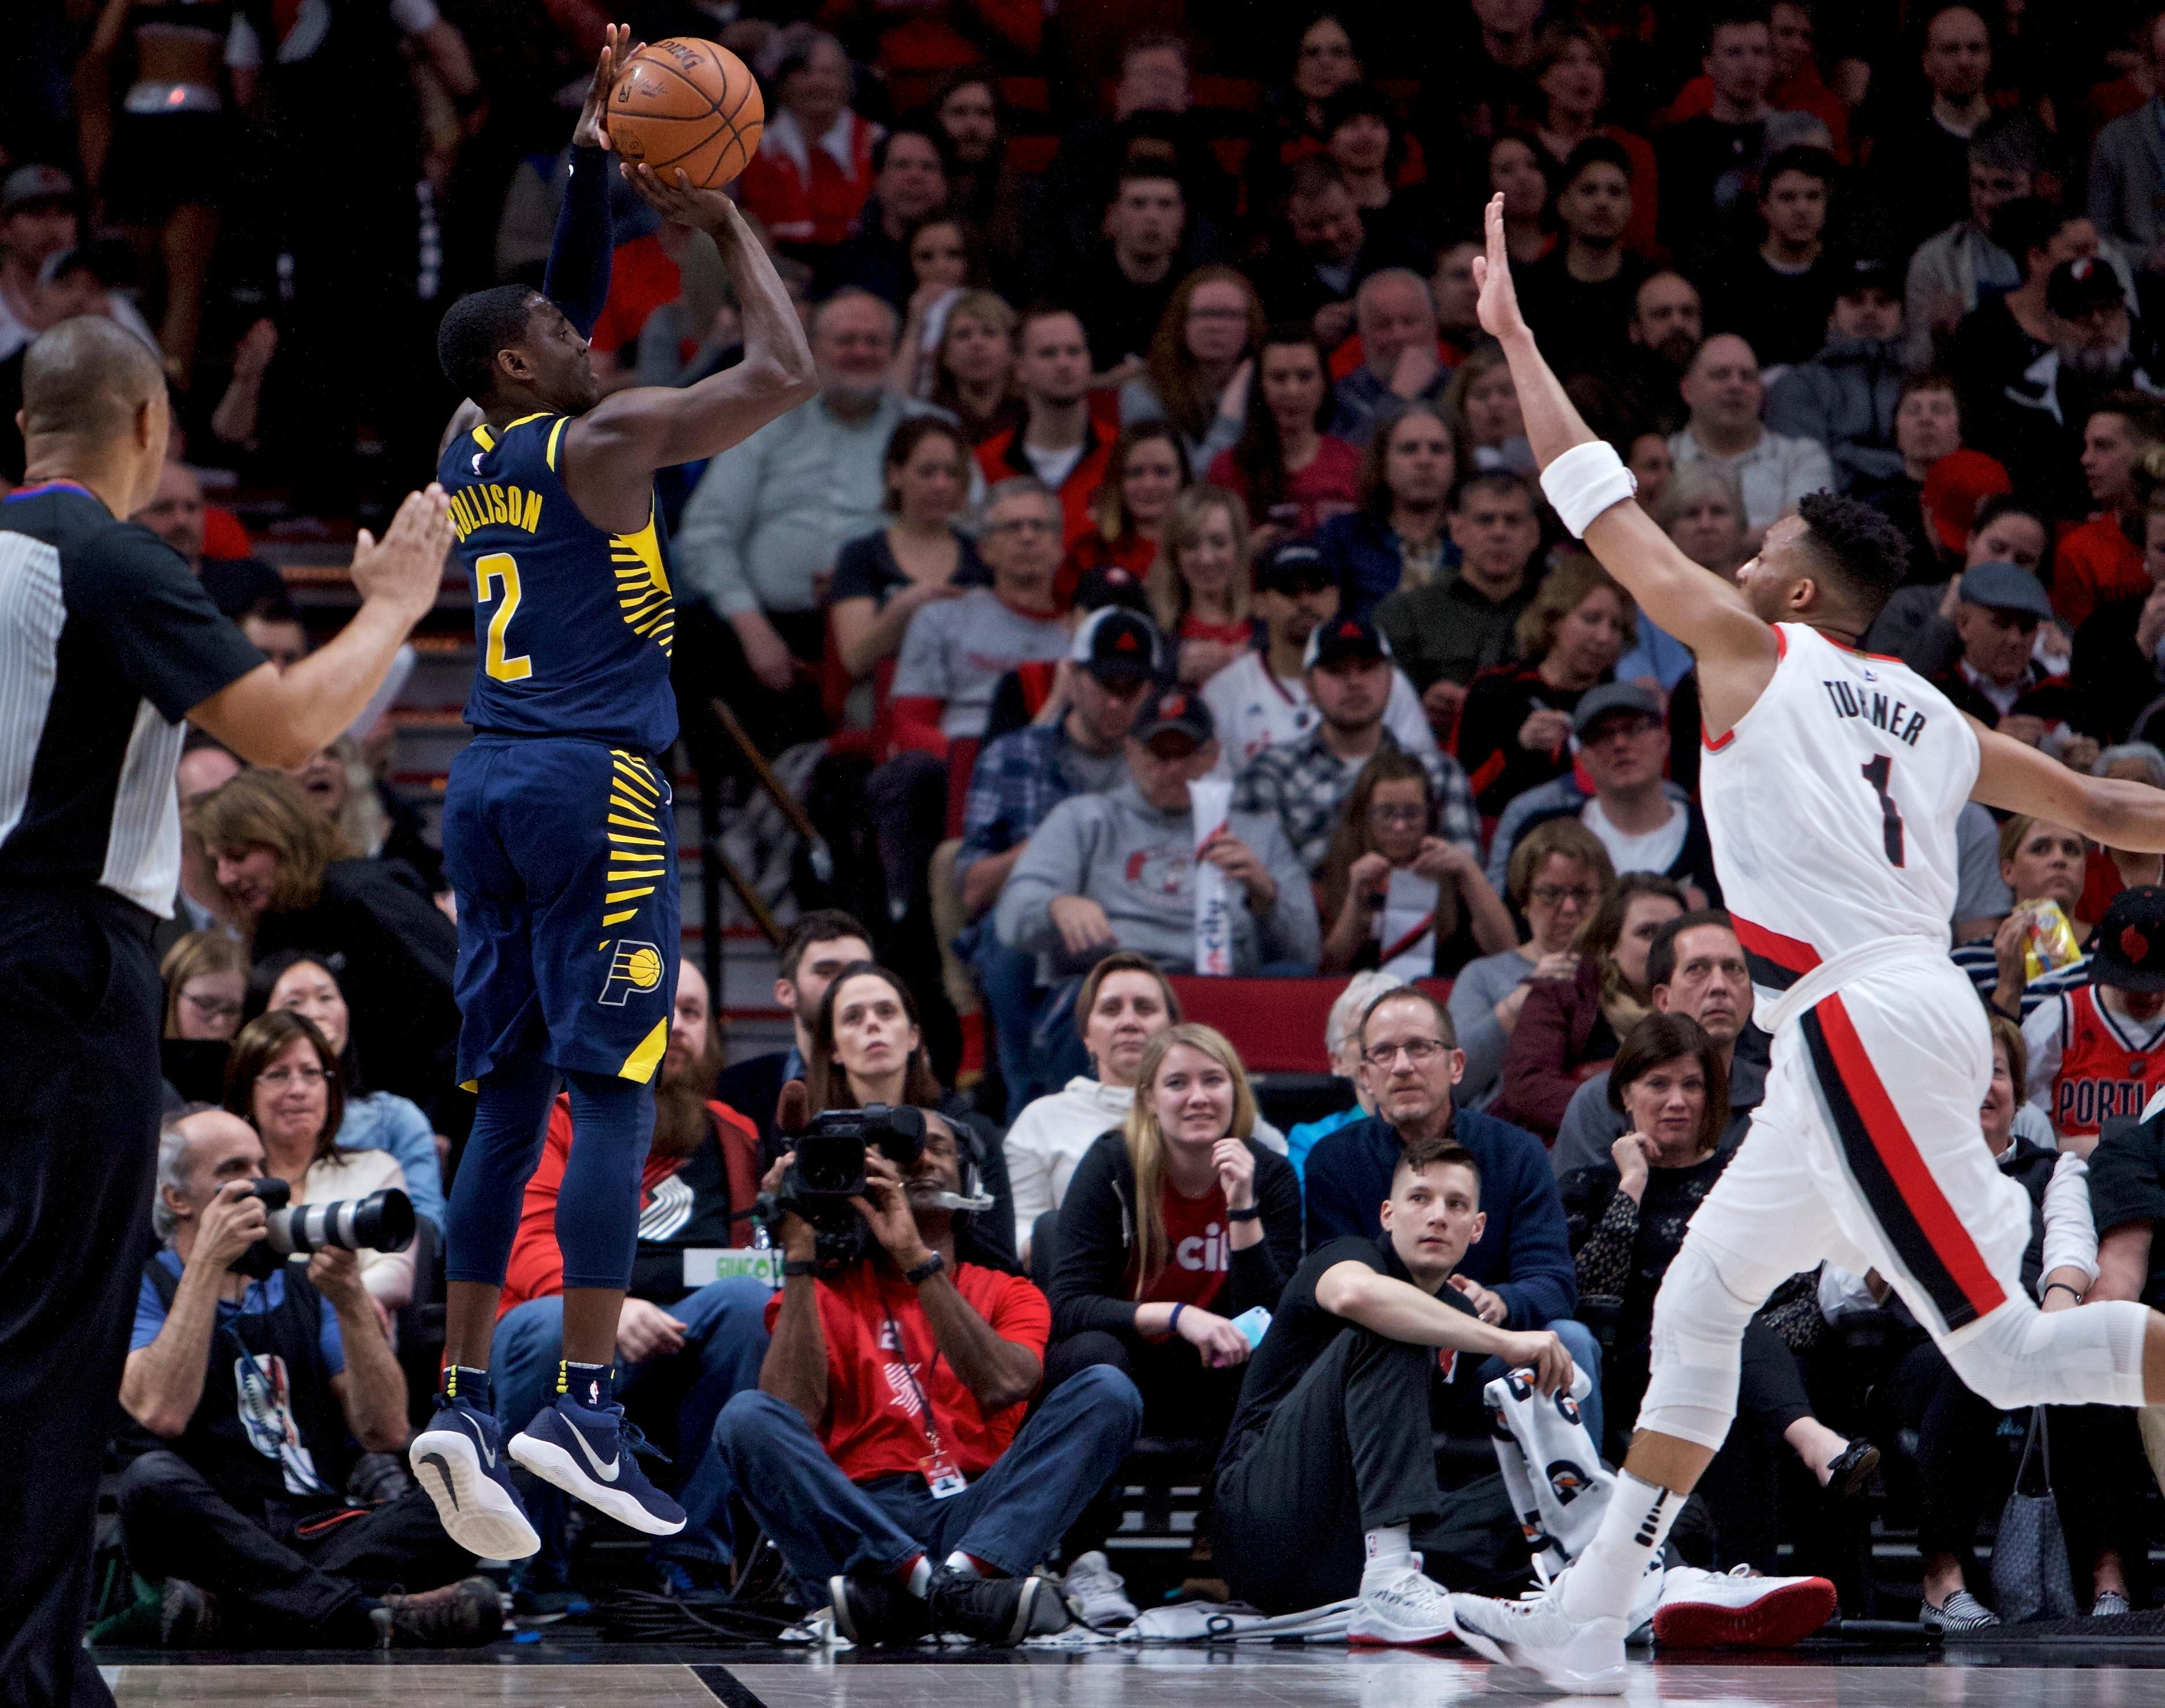 Indiana Pacers guard Darren Collison, left, shoots over Portland Trail Blazers guard Evan Turner during the second half of an NBA basketball game in Portland, Ore., Thursday, Jan. 18, 2018. (AP Photo/Craig Mitchelldyer)